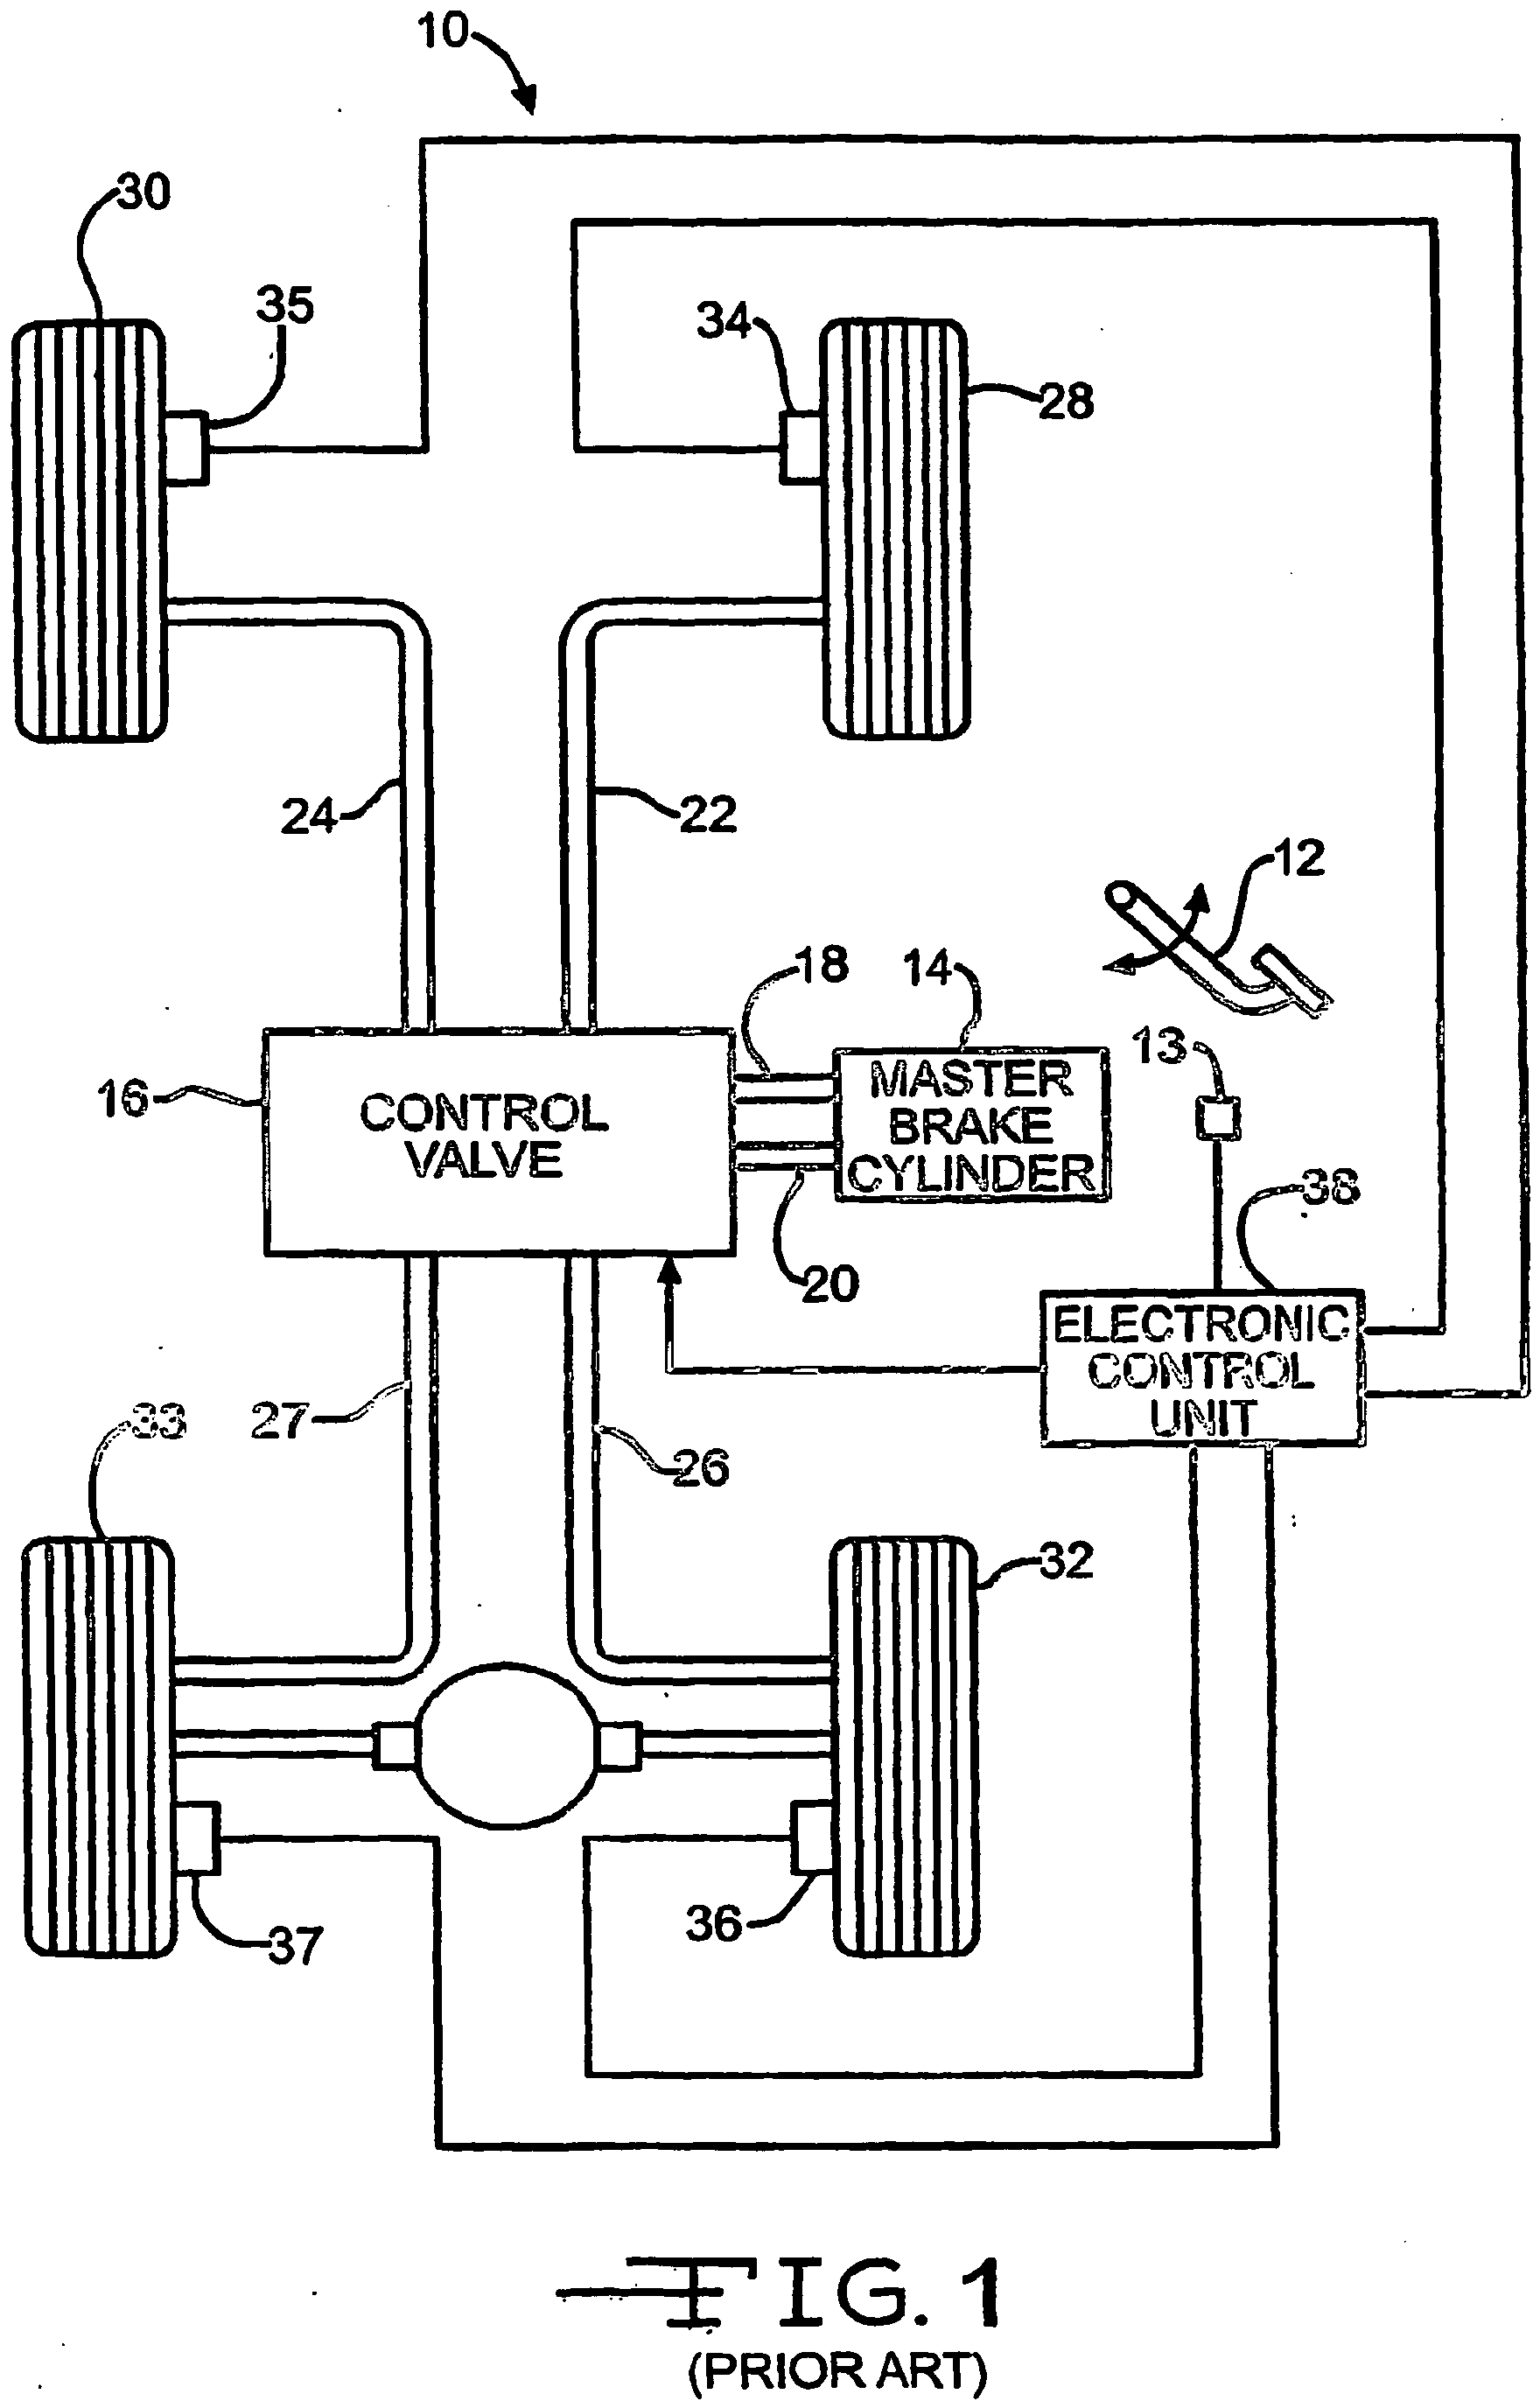 hayes brake controller wiring diagram for aprilaire 700 humidifier kelsey circuit maker